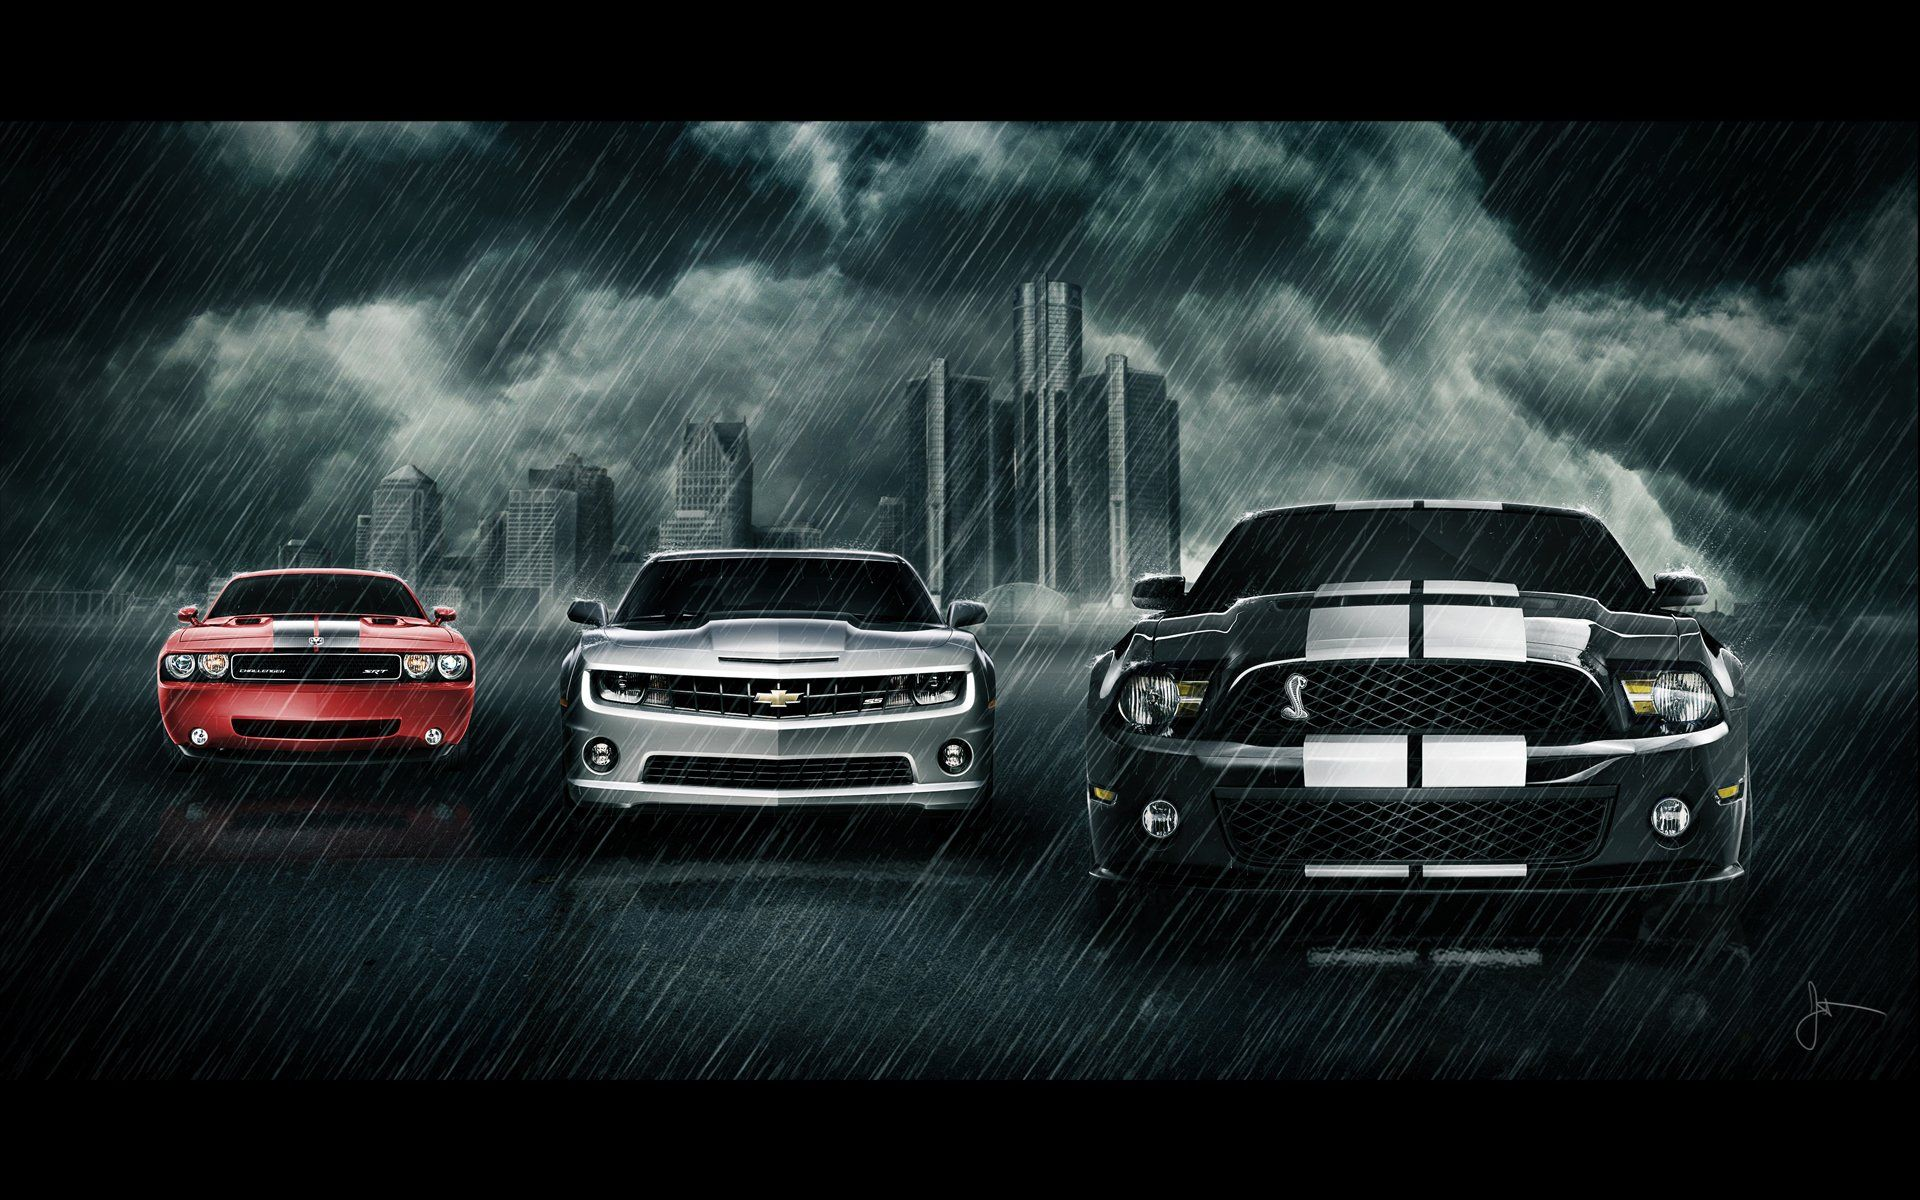 Wonderful Awesome And Cool Cars Wallpapers Beautiful Cars And Good Ideas